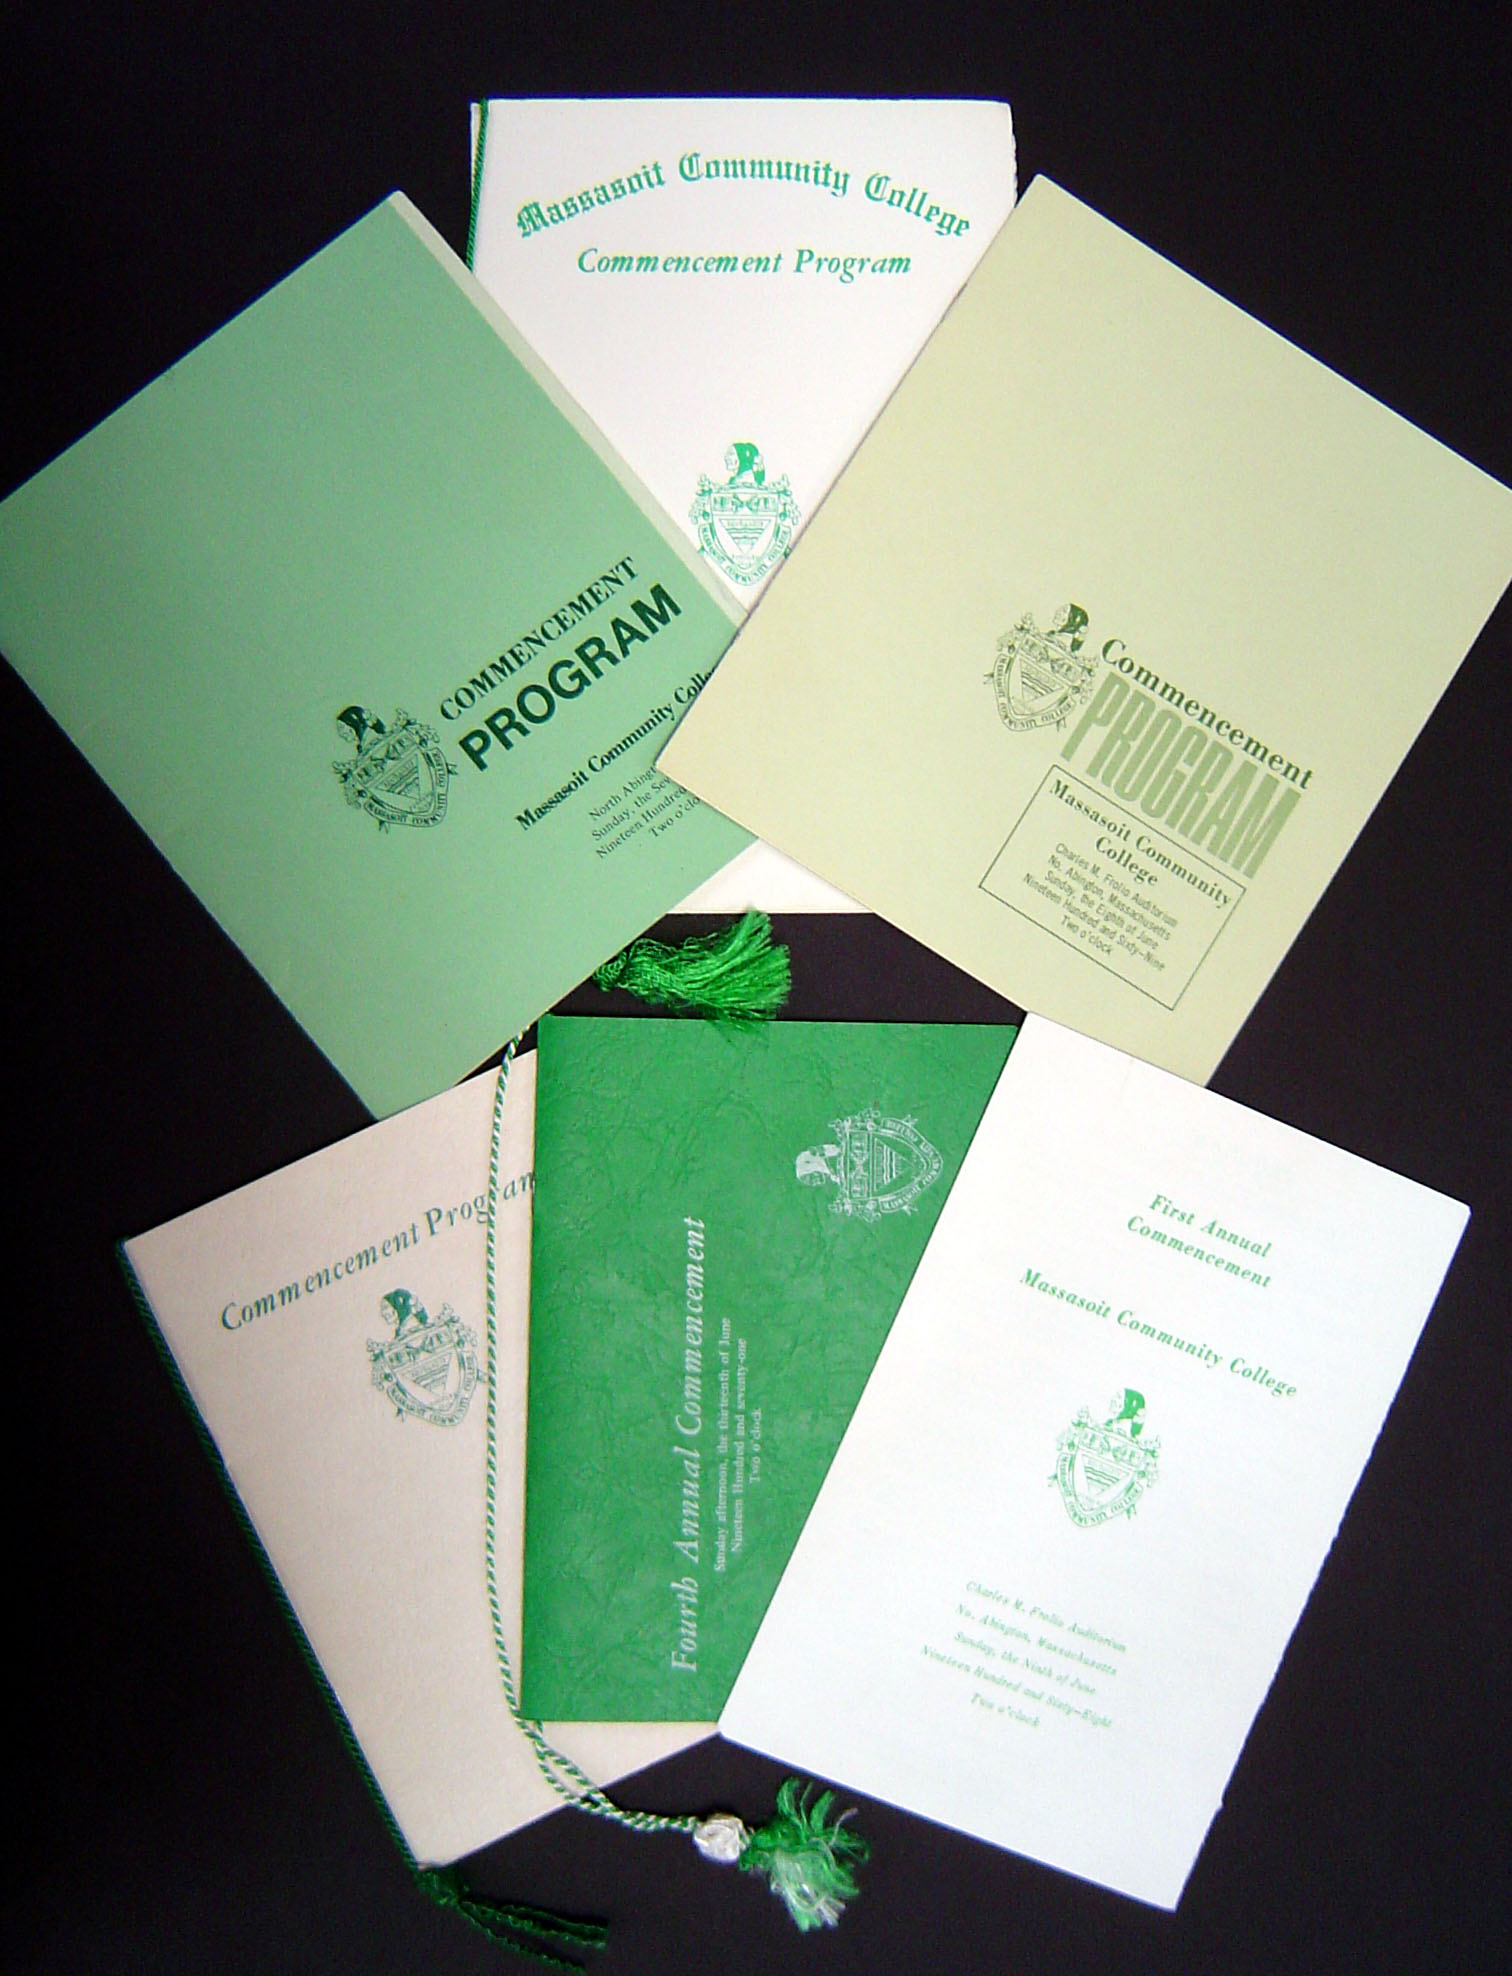 commencement program covers